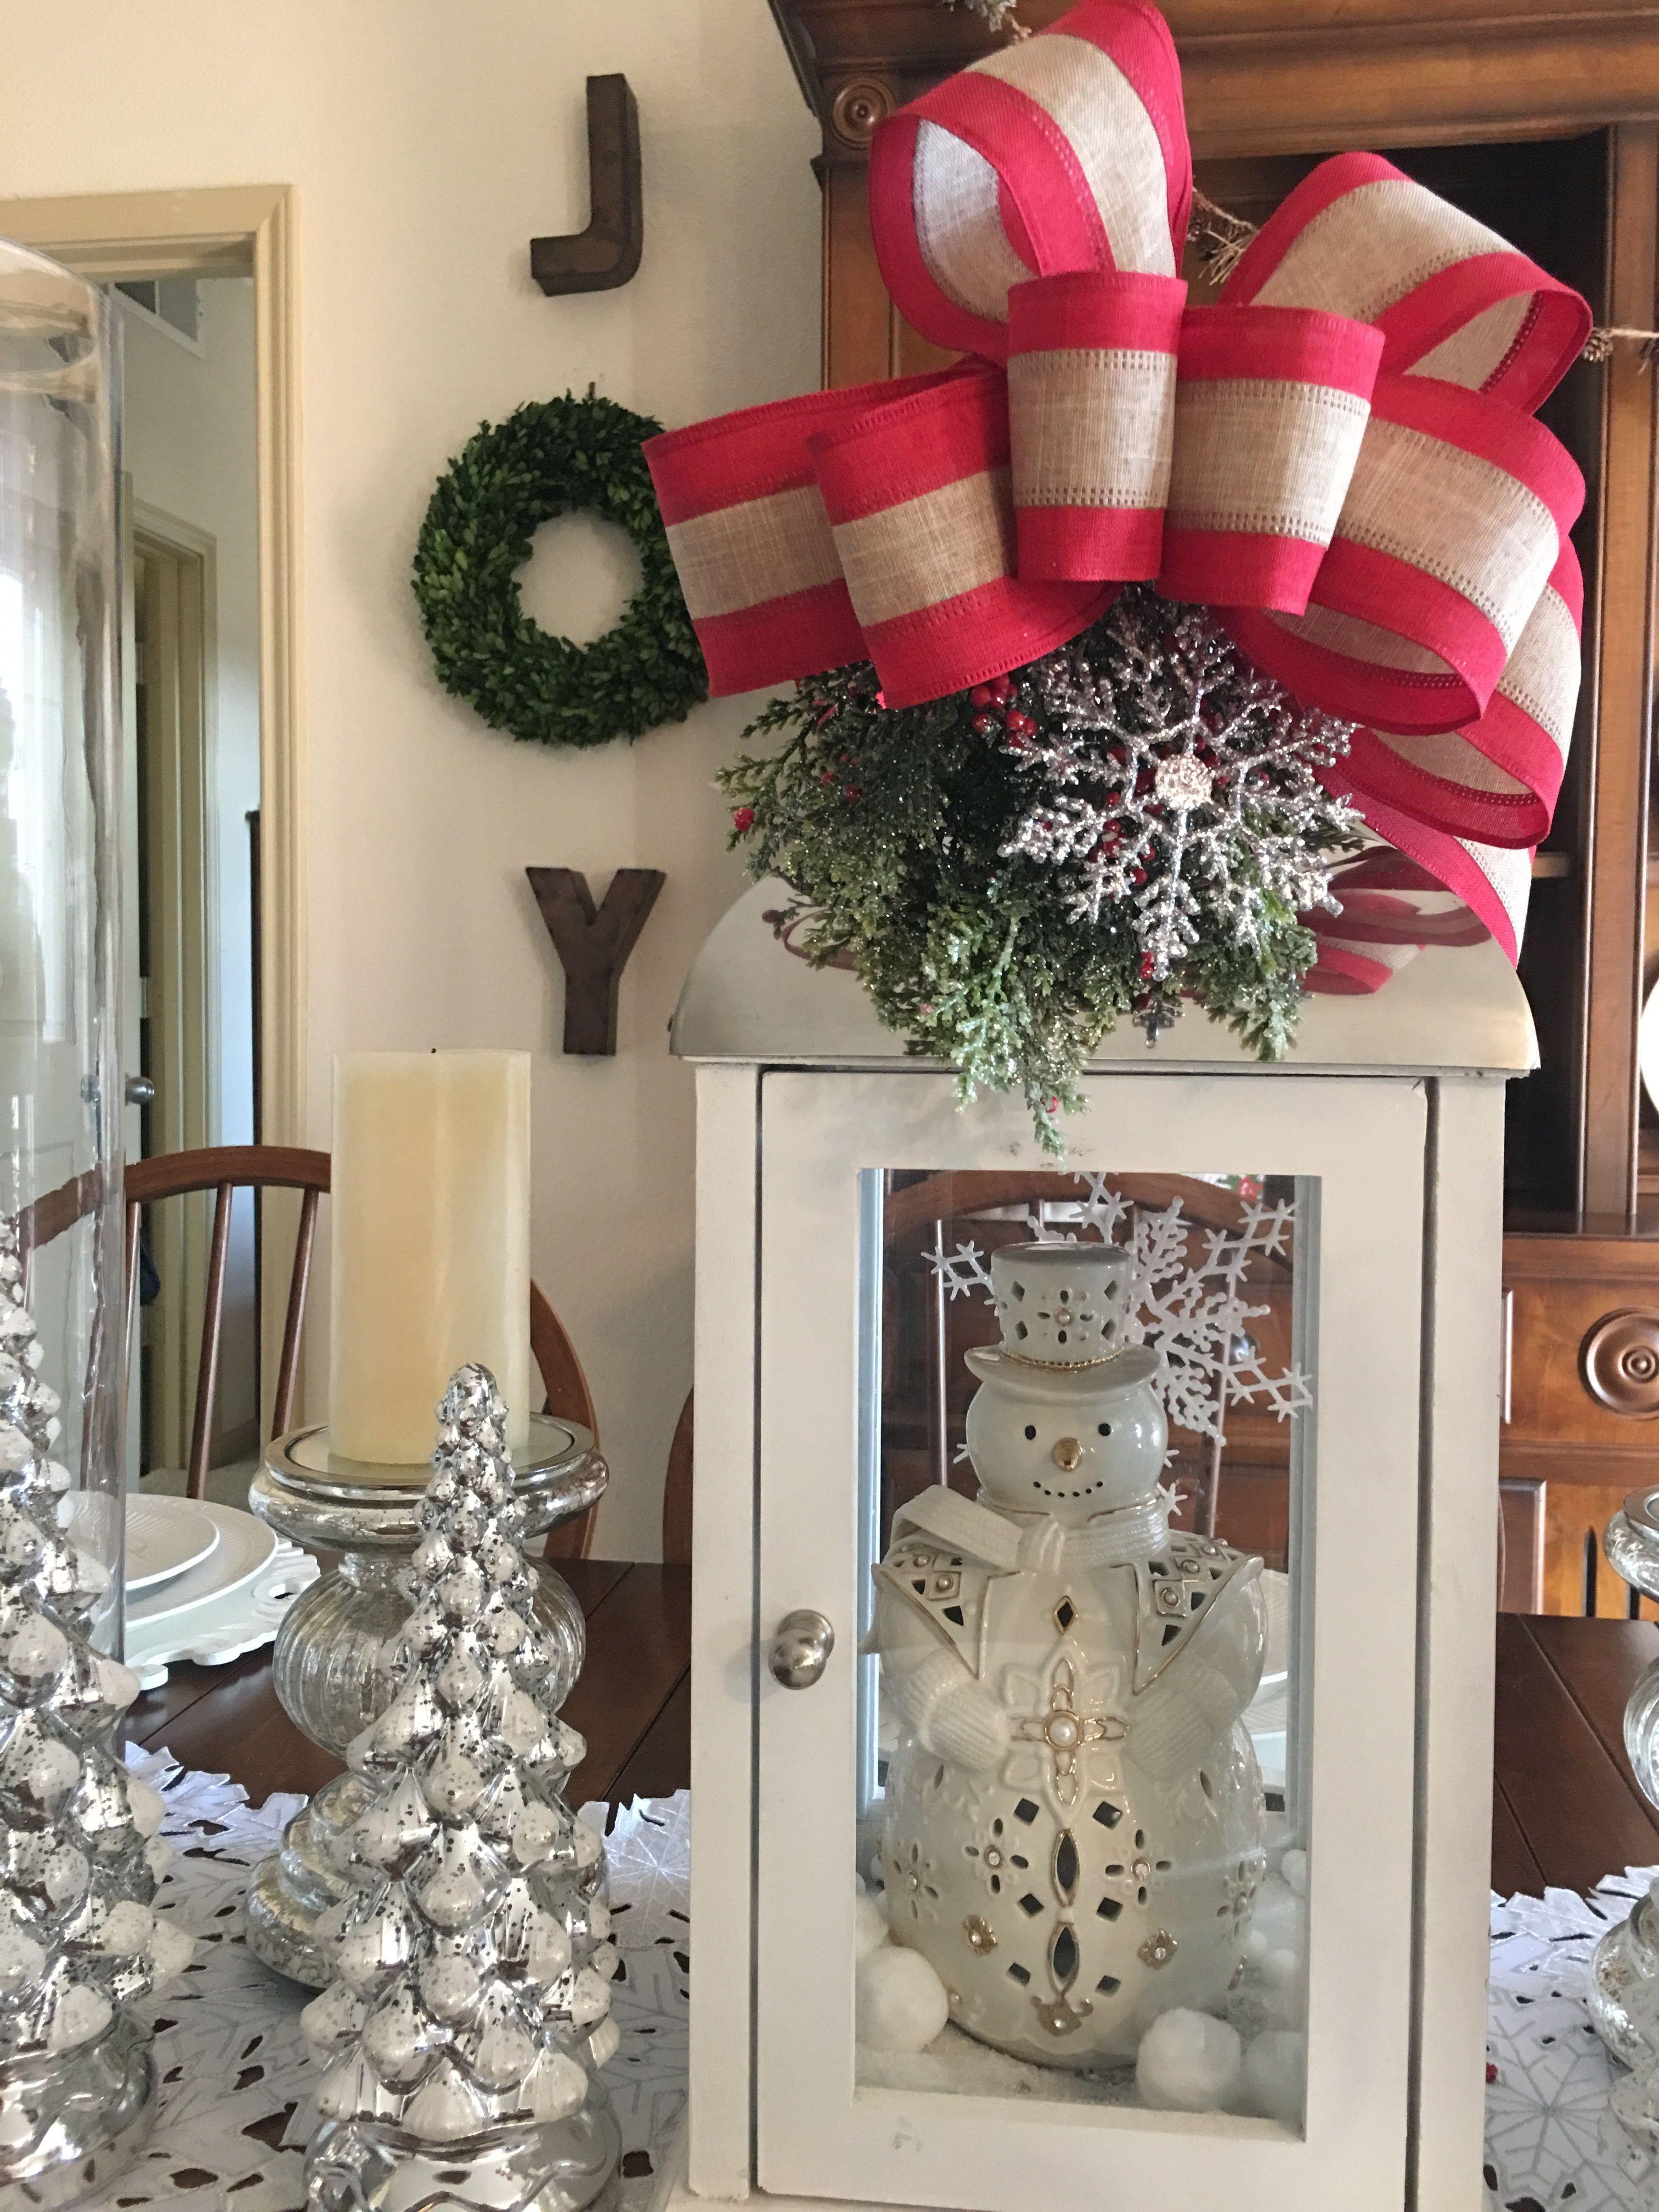 Window ideas for deer stand  pin by yusmeri pinto on navidad  pinterest  christmas decor